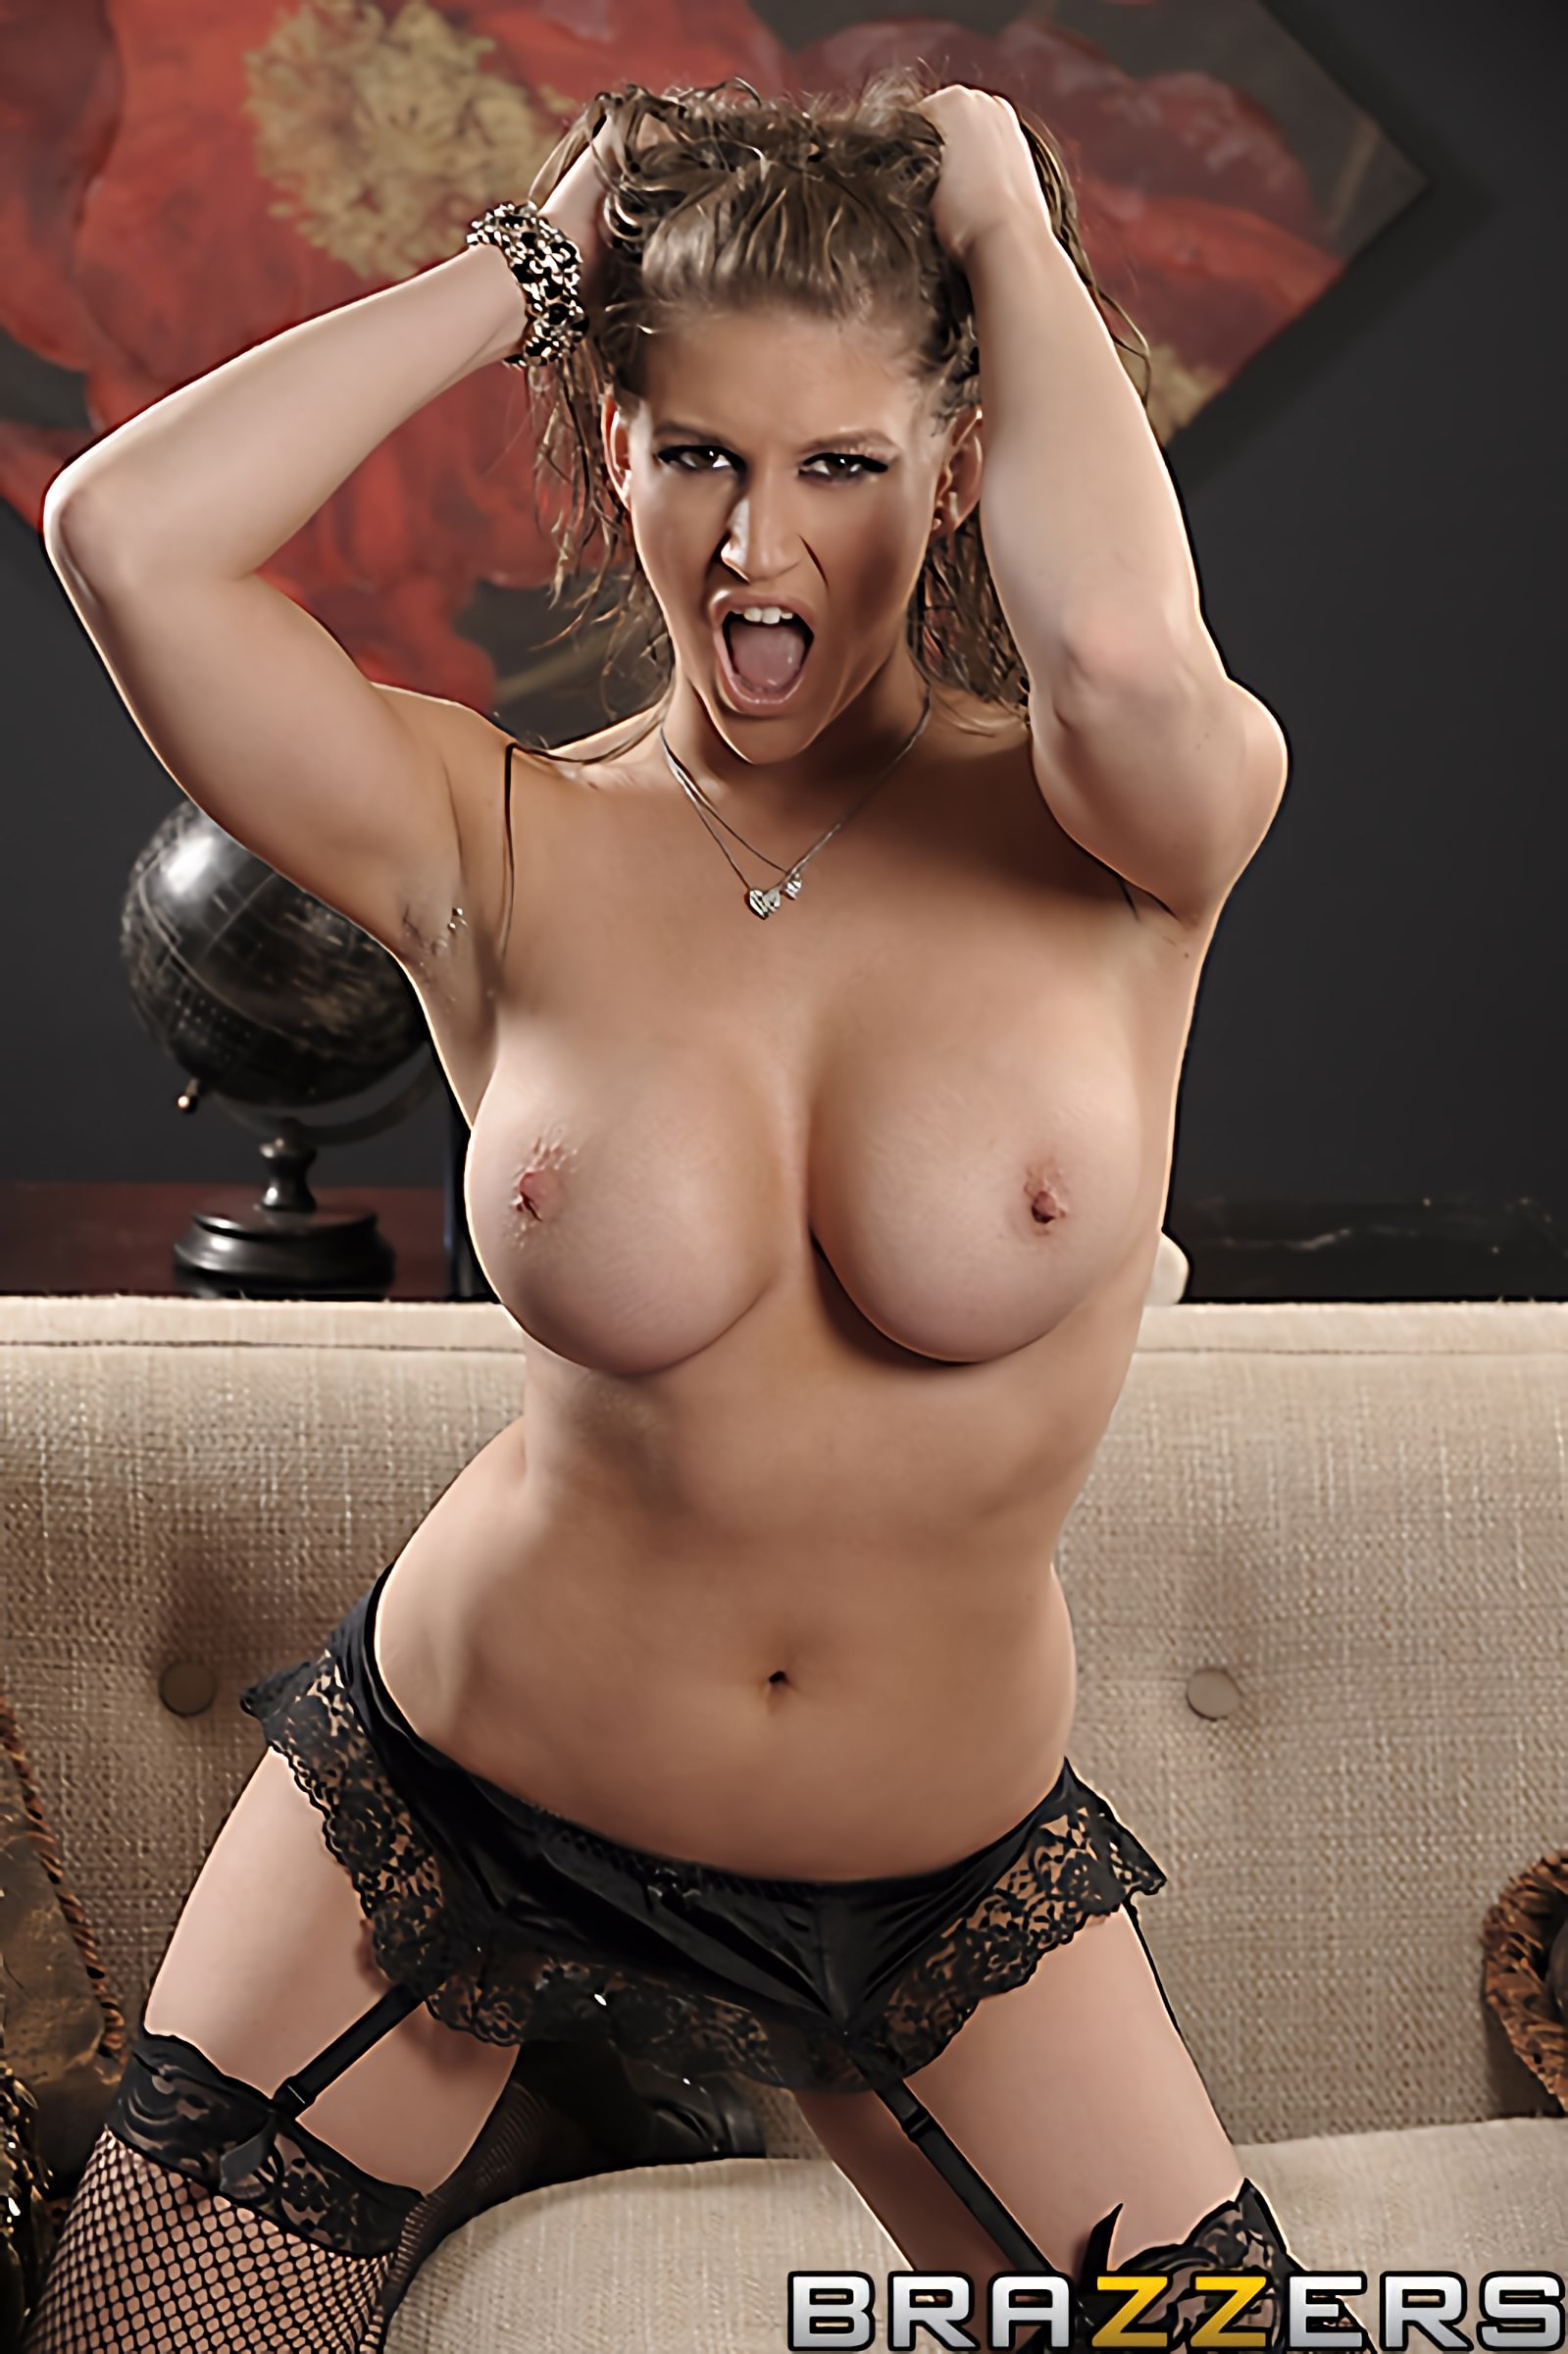 Brazzers 'Slut At Large' starring Eve Laurence (Photo 15)